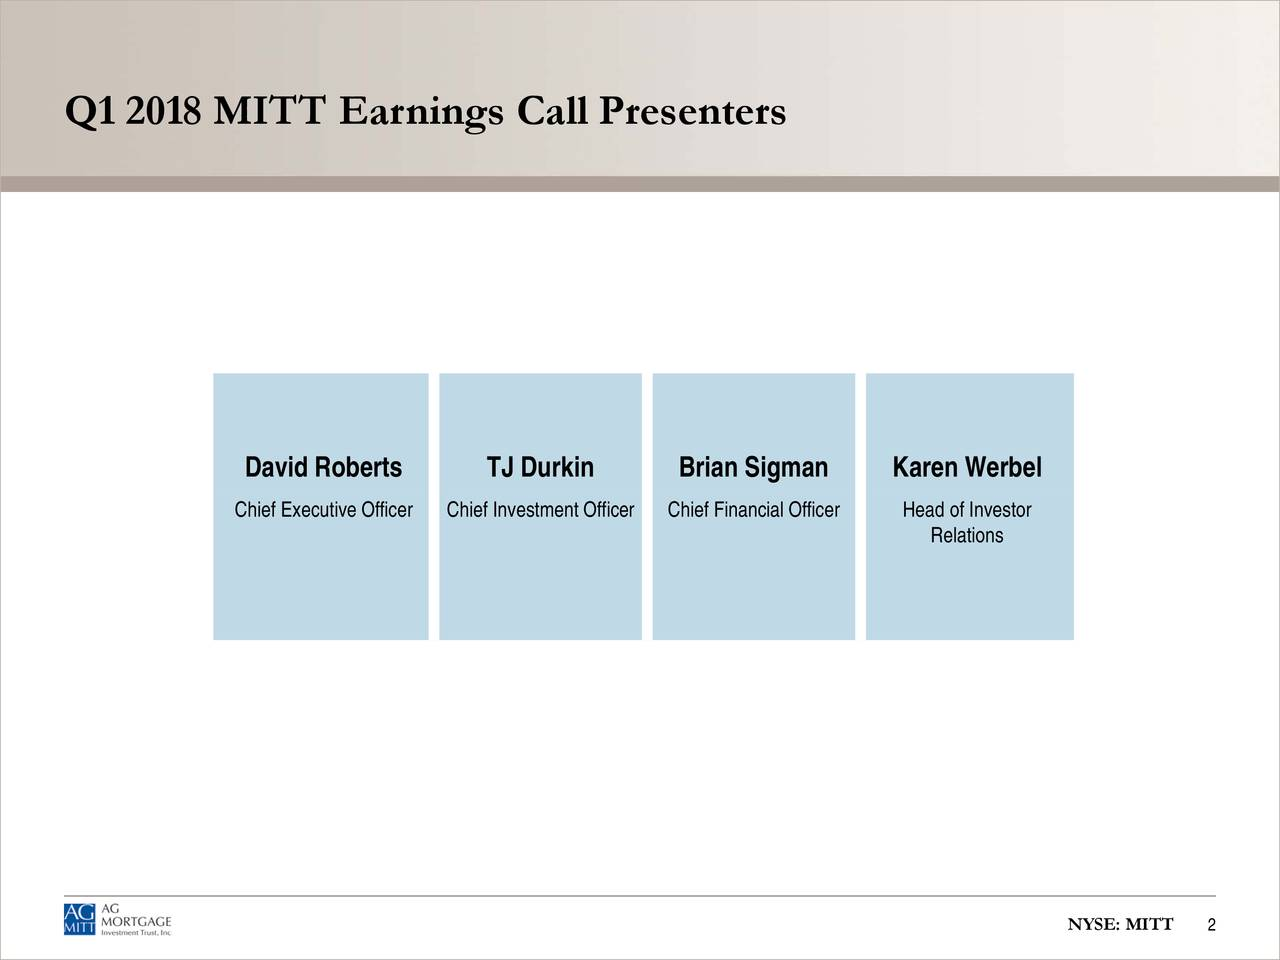 Q1 2018 MITT Earnings Call Presenters